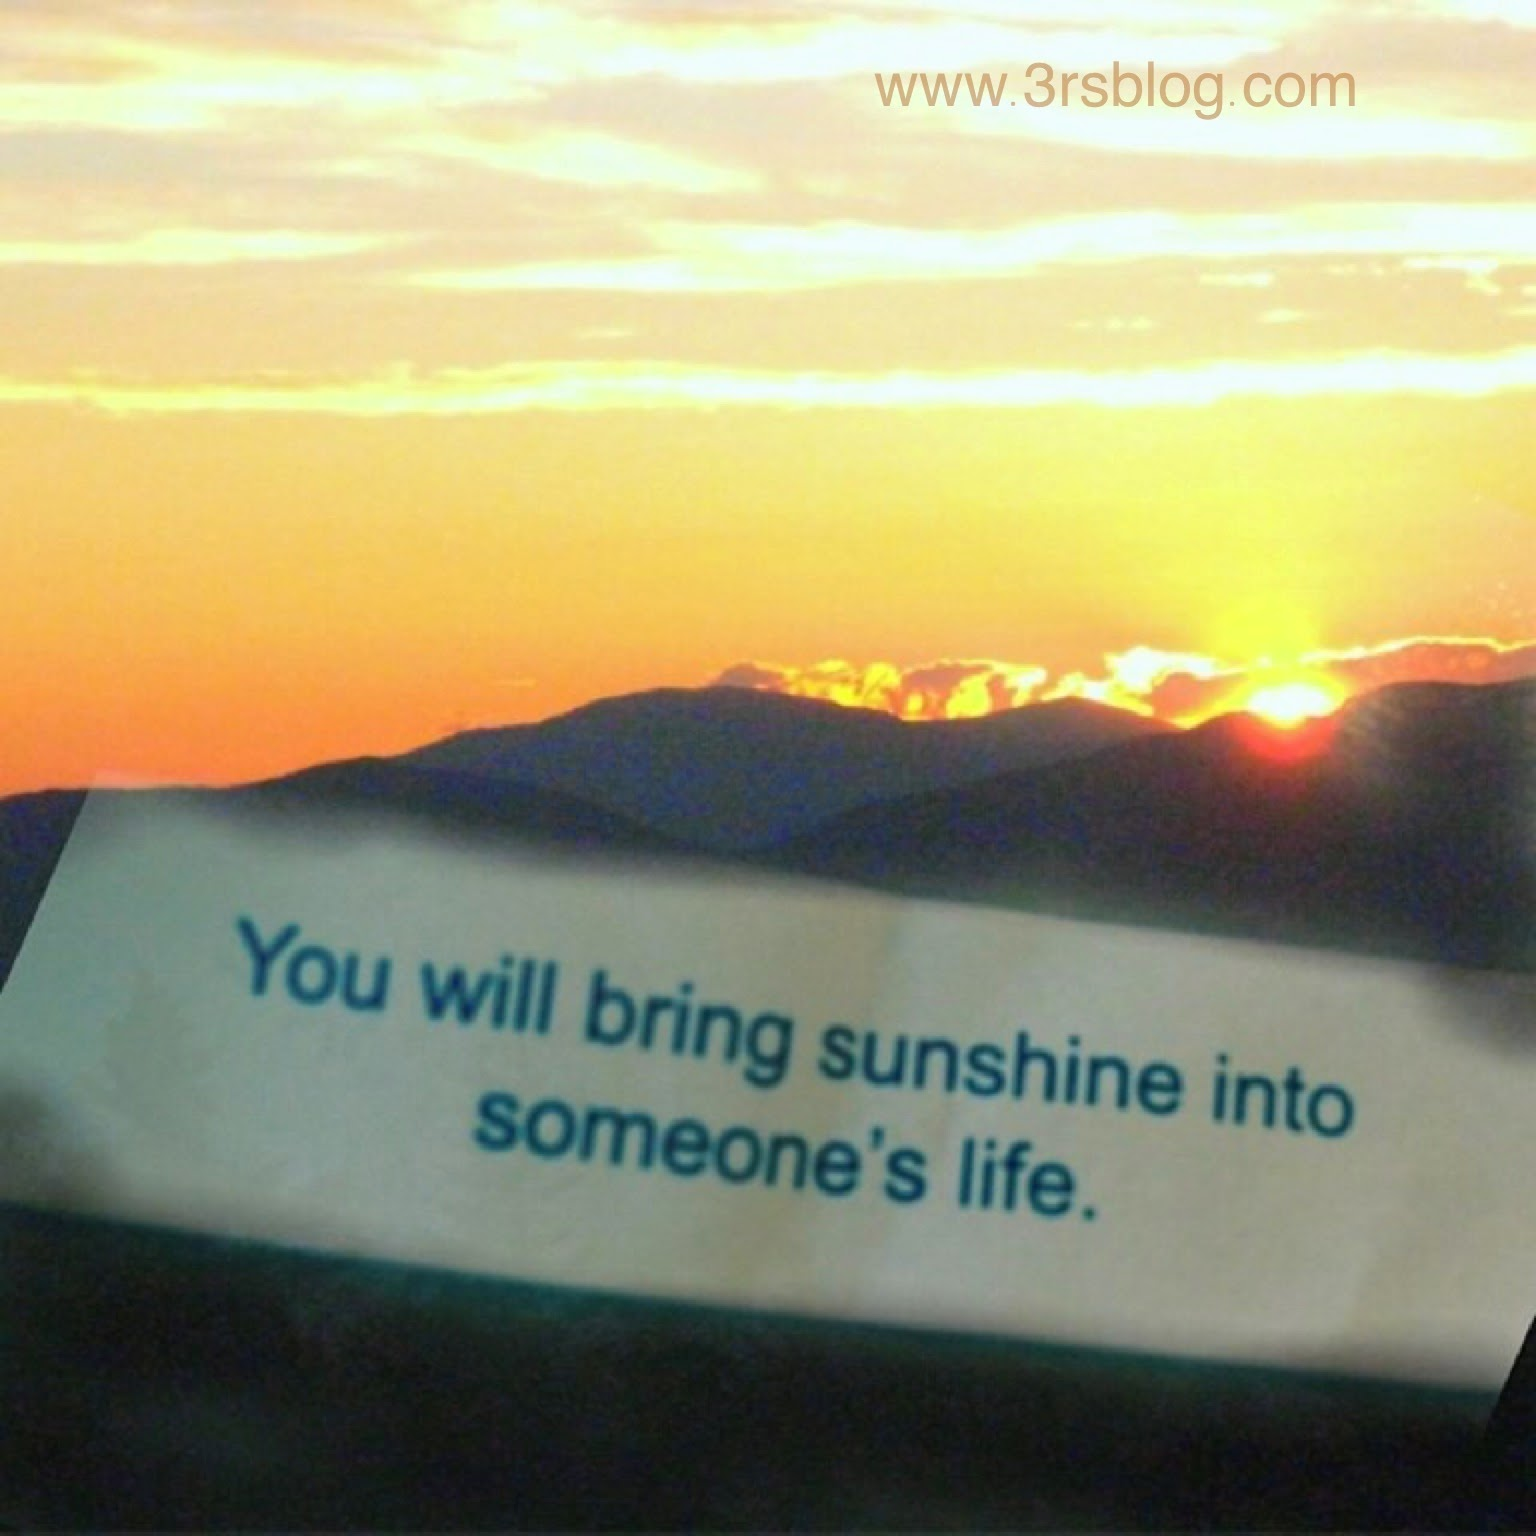 A sunny fortune on The 3 R's Blog